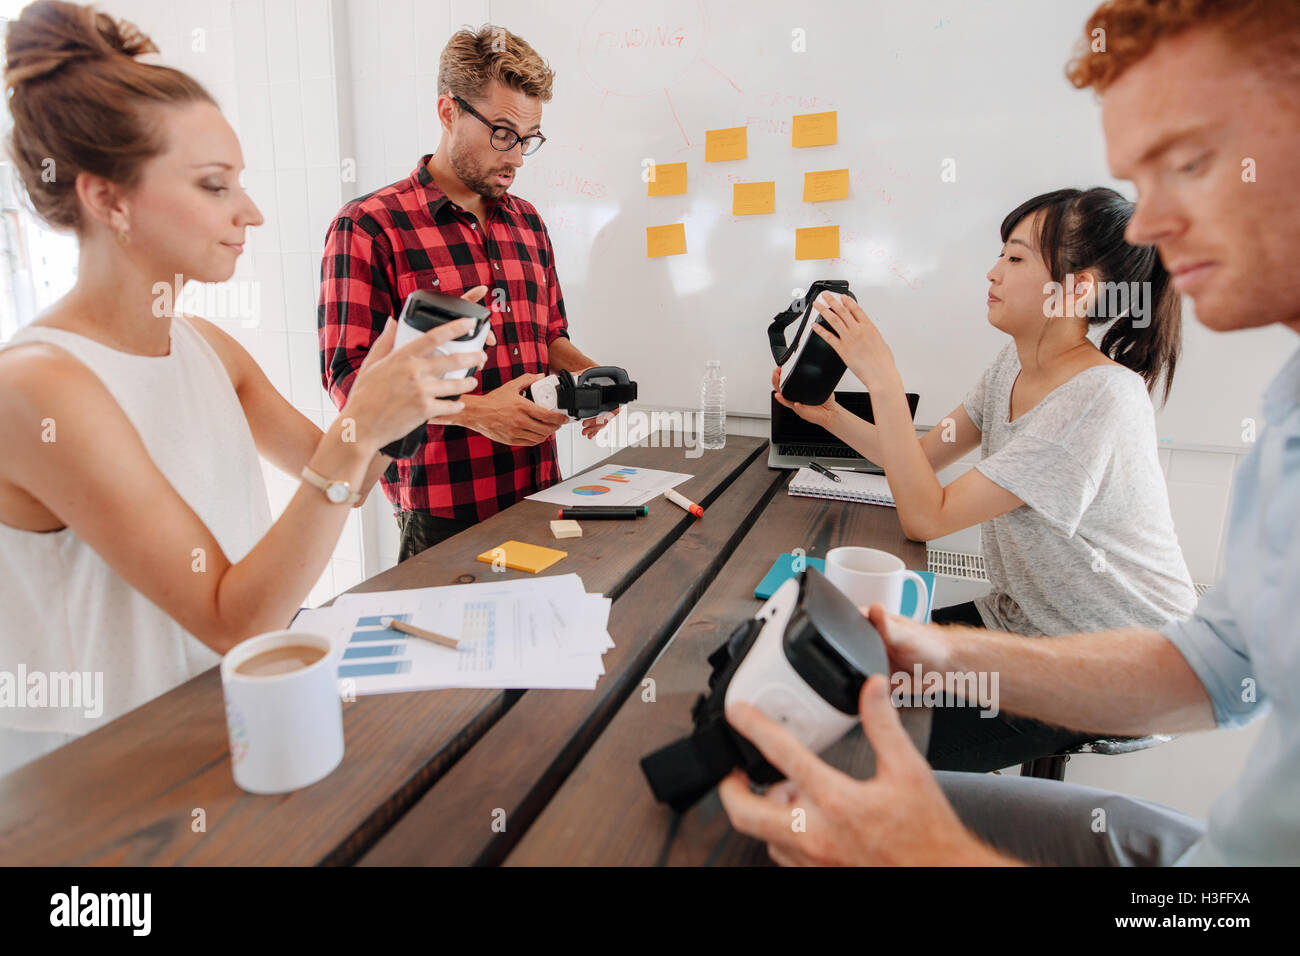 Group of young developers working on improving augmented reality devices. Diverse business team in meeting room - Stock Image